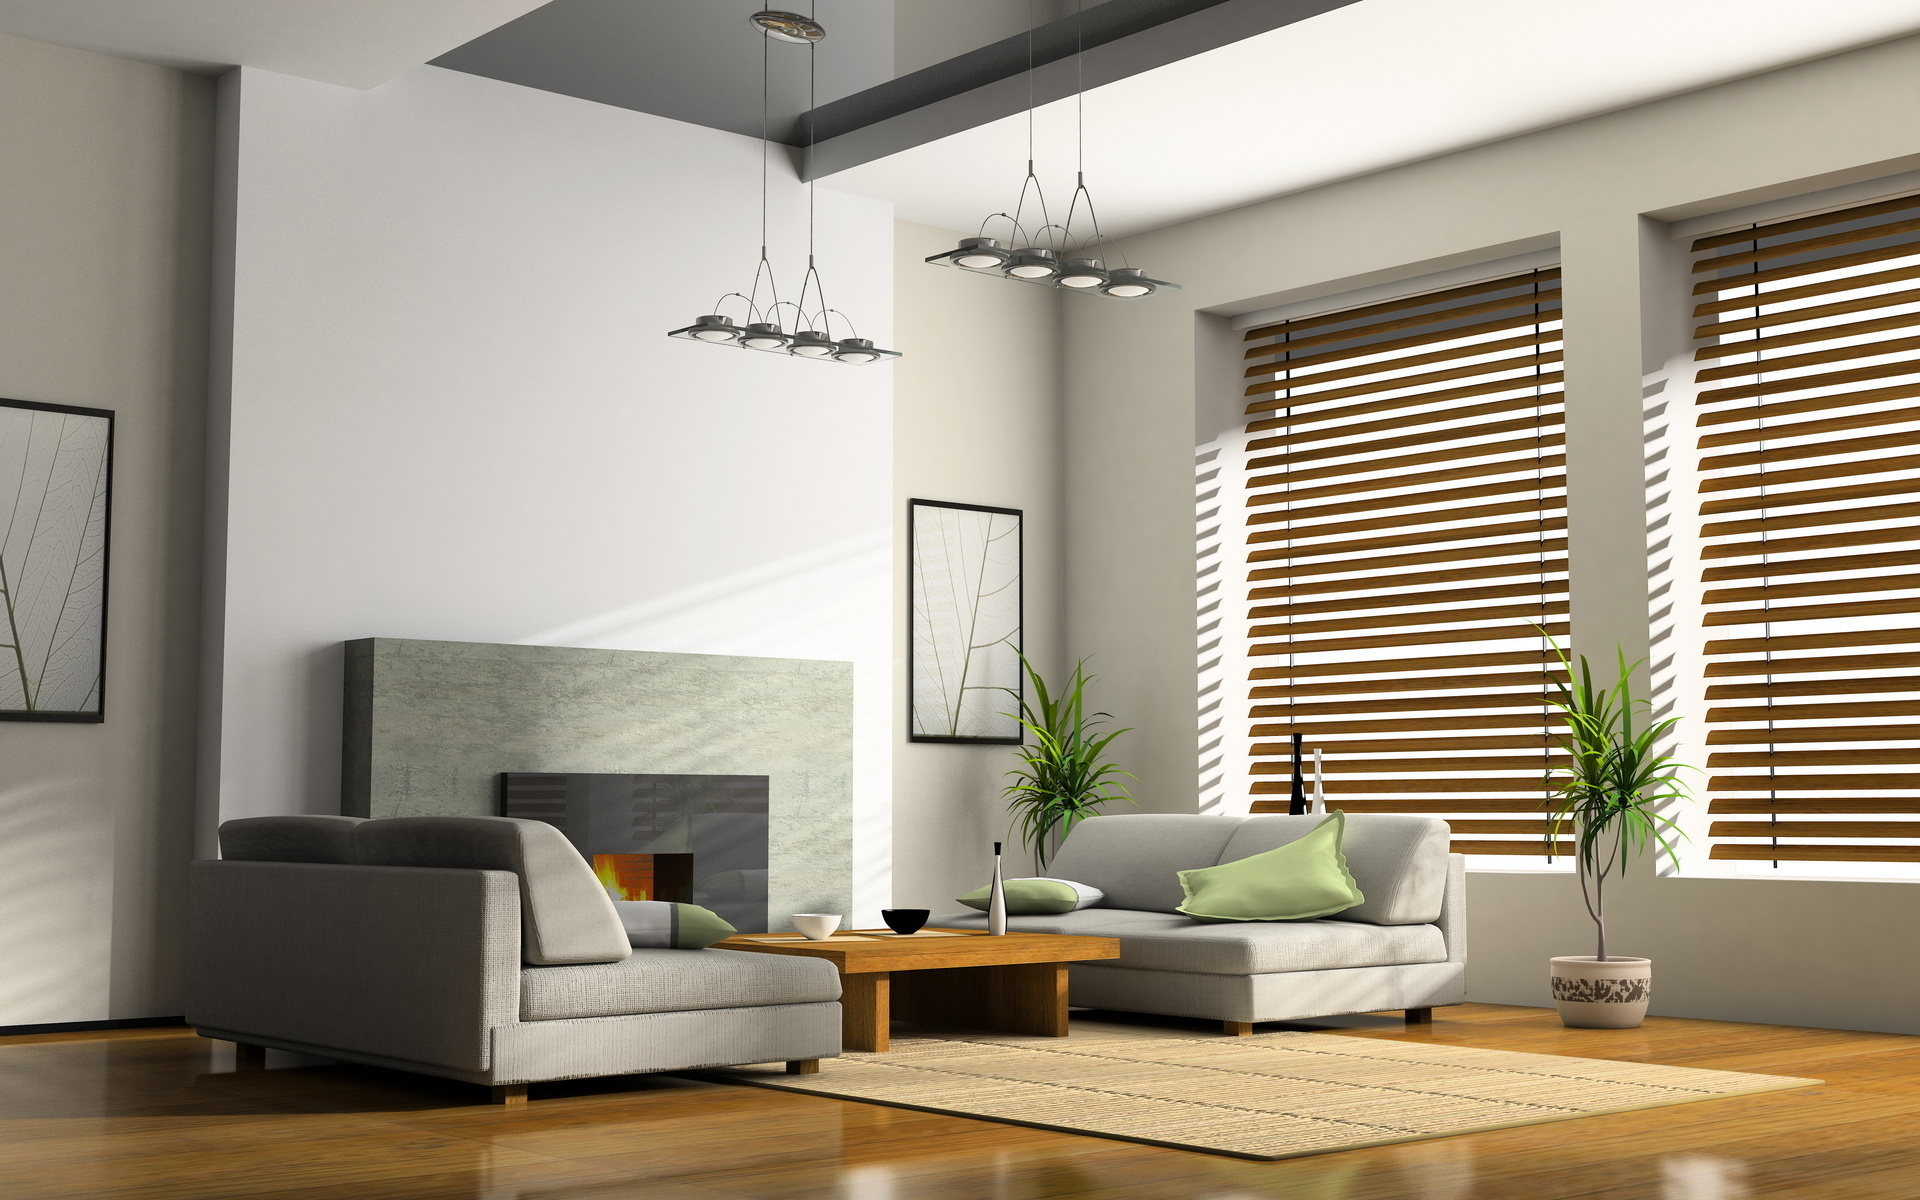 3d interior design desktop wallpaper 60899 1920x1200 px for House interior design wallpapers